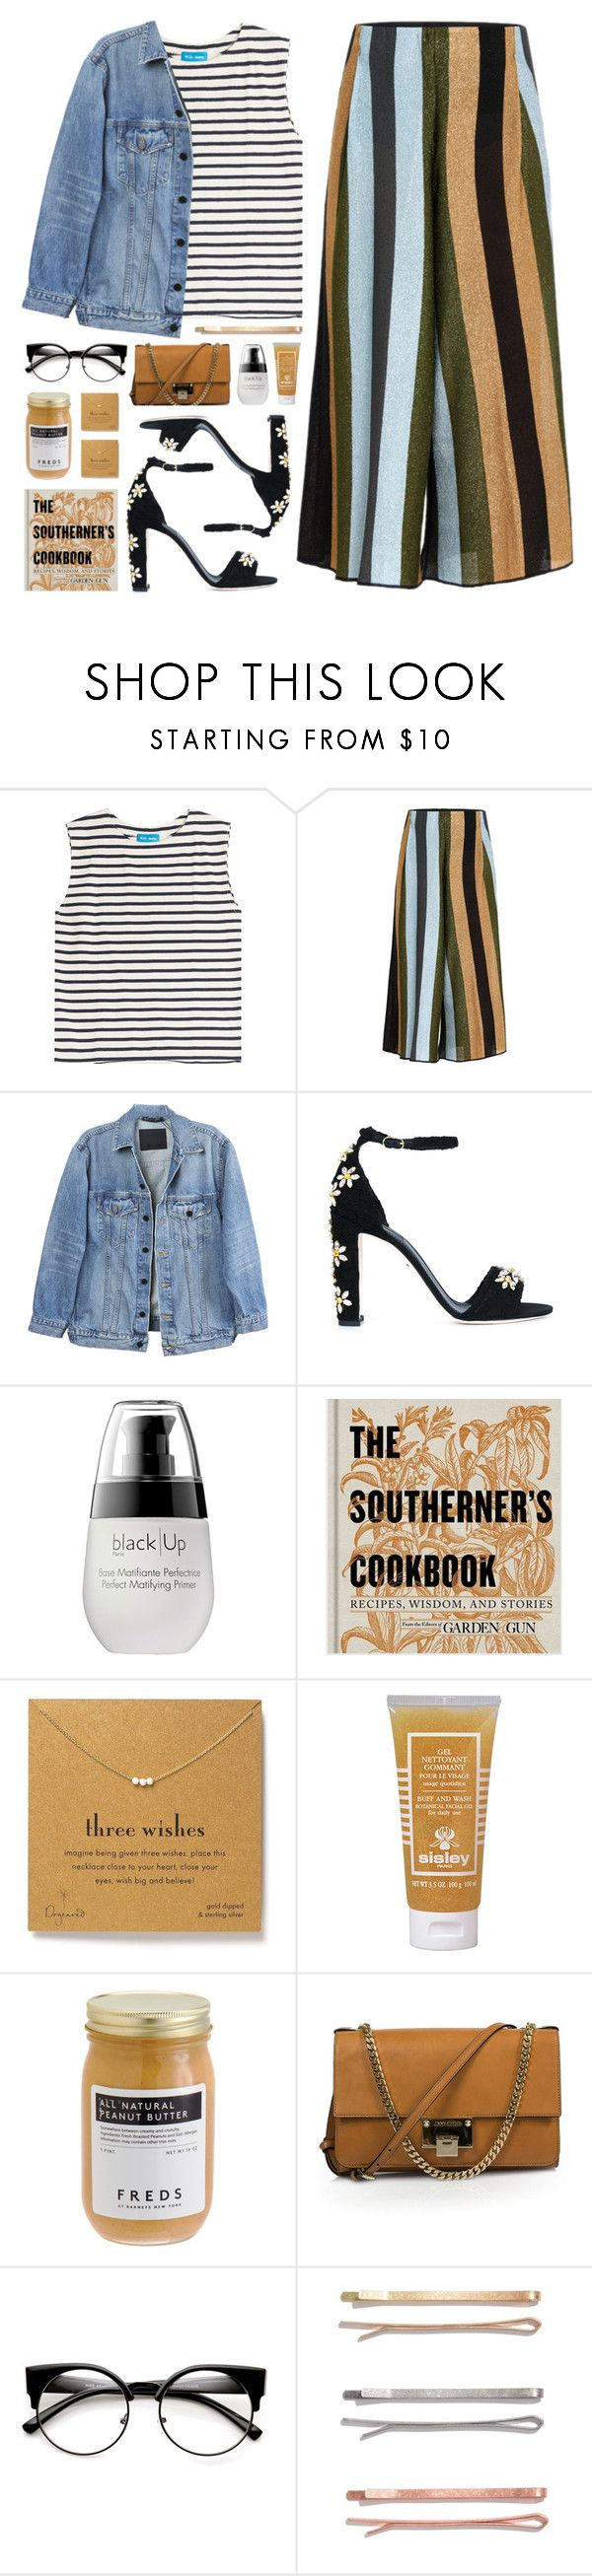 """""""Lost Hollywood Dreams"""" by fyenksfiona ❤ liked on Polyvore featuring M.i.h Jeans, Circus Hotel, Y/Project, Dolce&Gabbana, Draper James, Dogeared, Sisley Paris, FREDS at Barneys New York, Jimmy Choo and Madewell"""